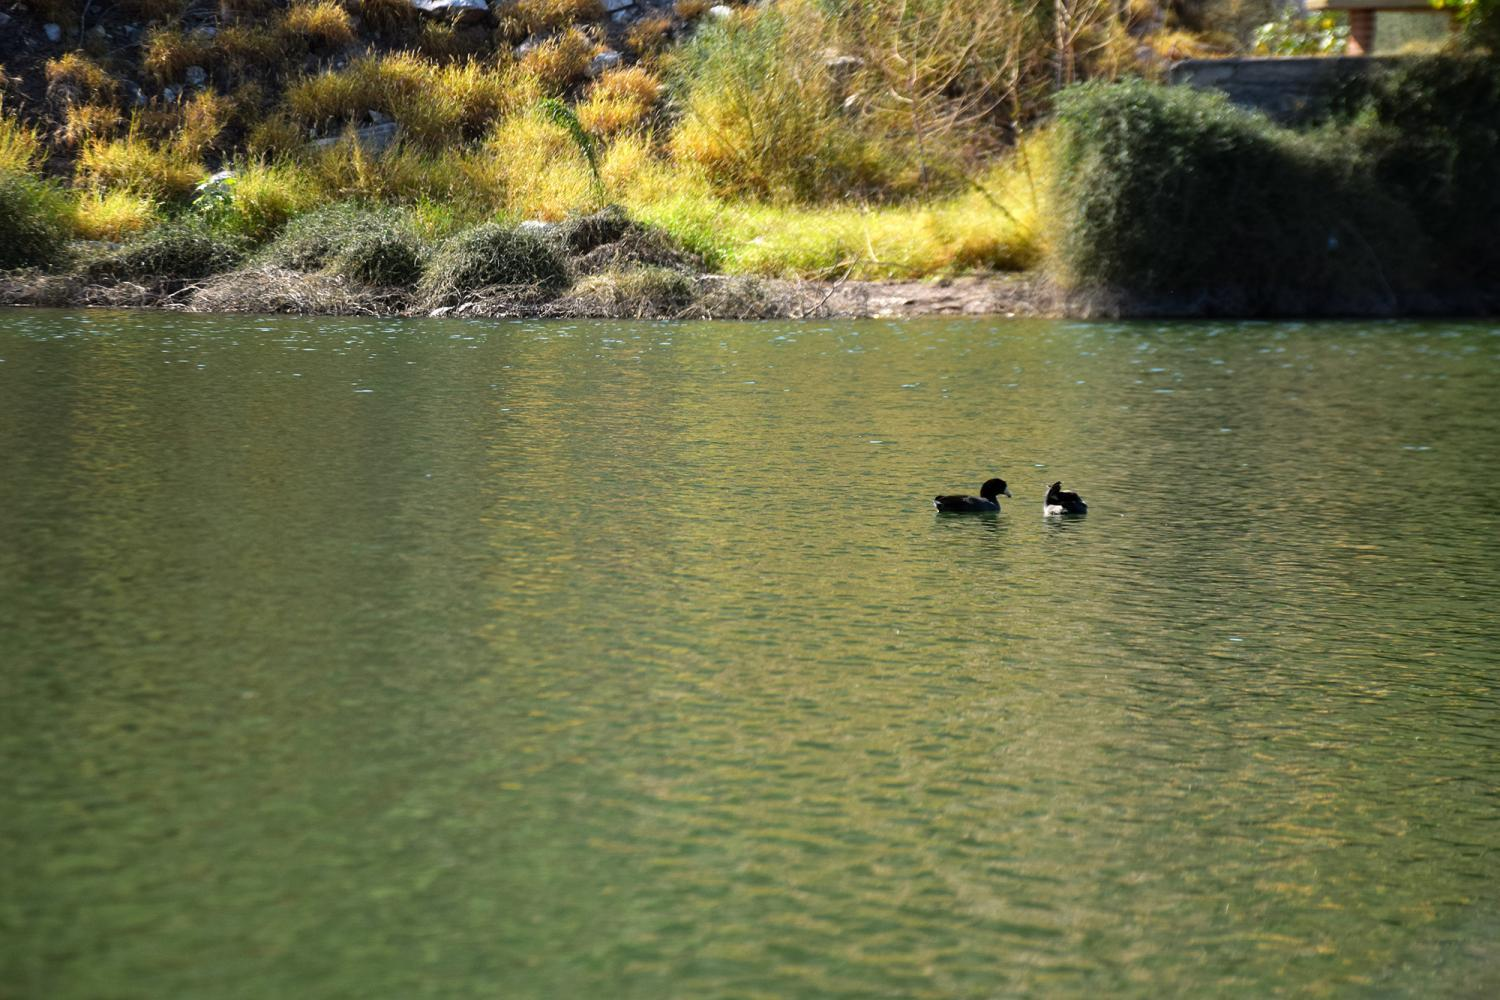 Ducks in La Sauceda